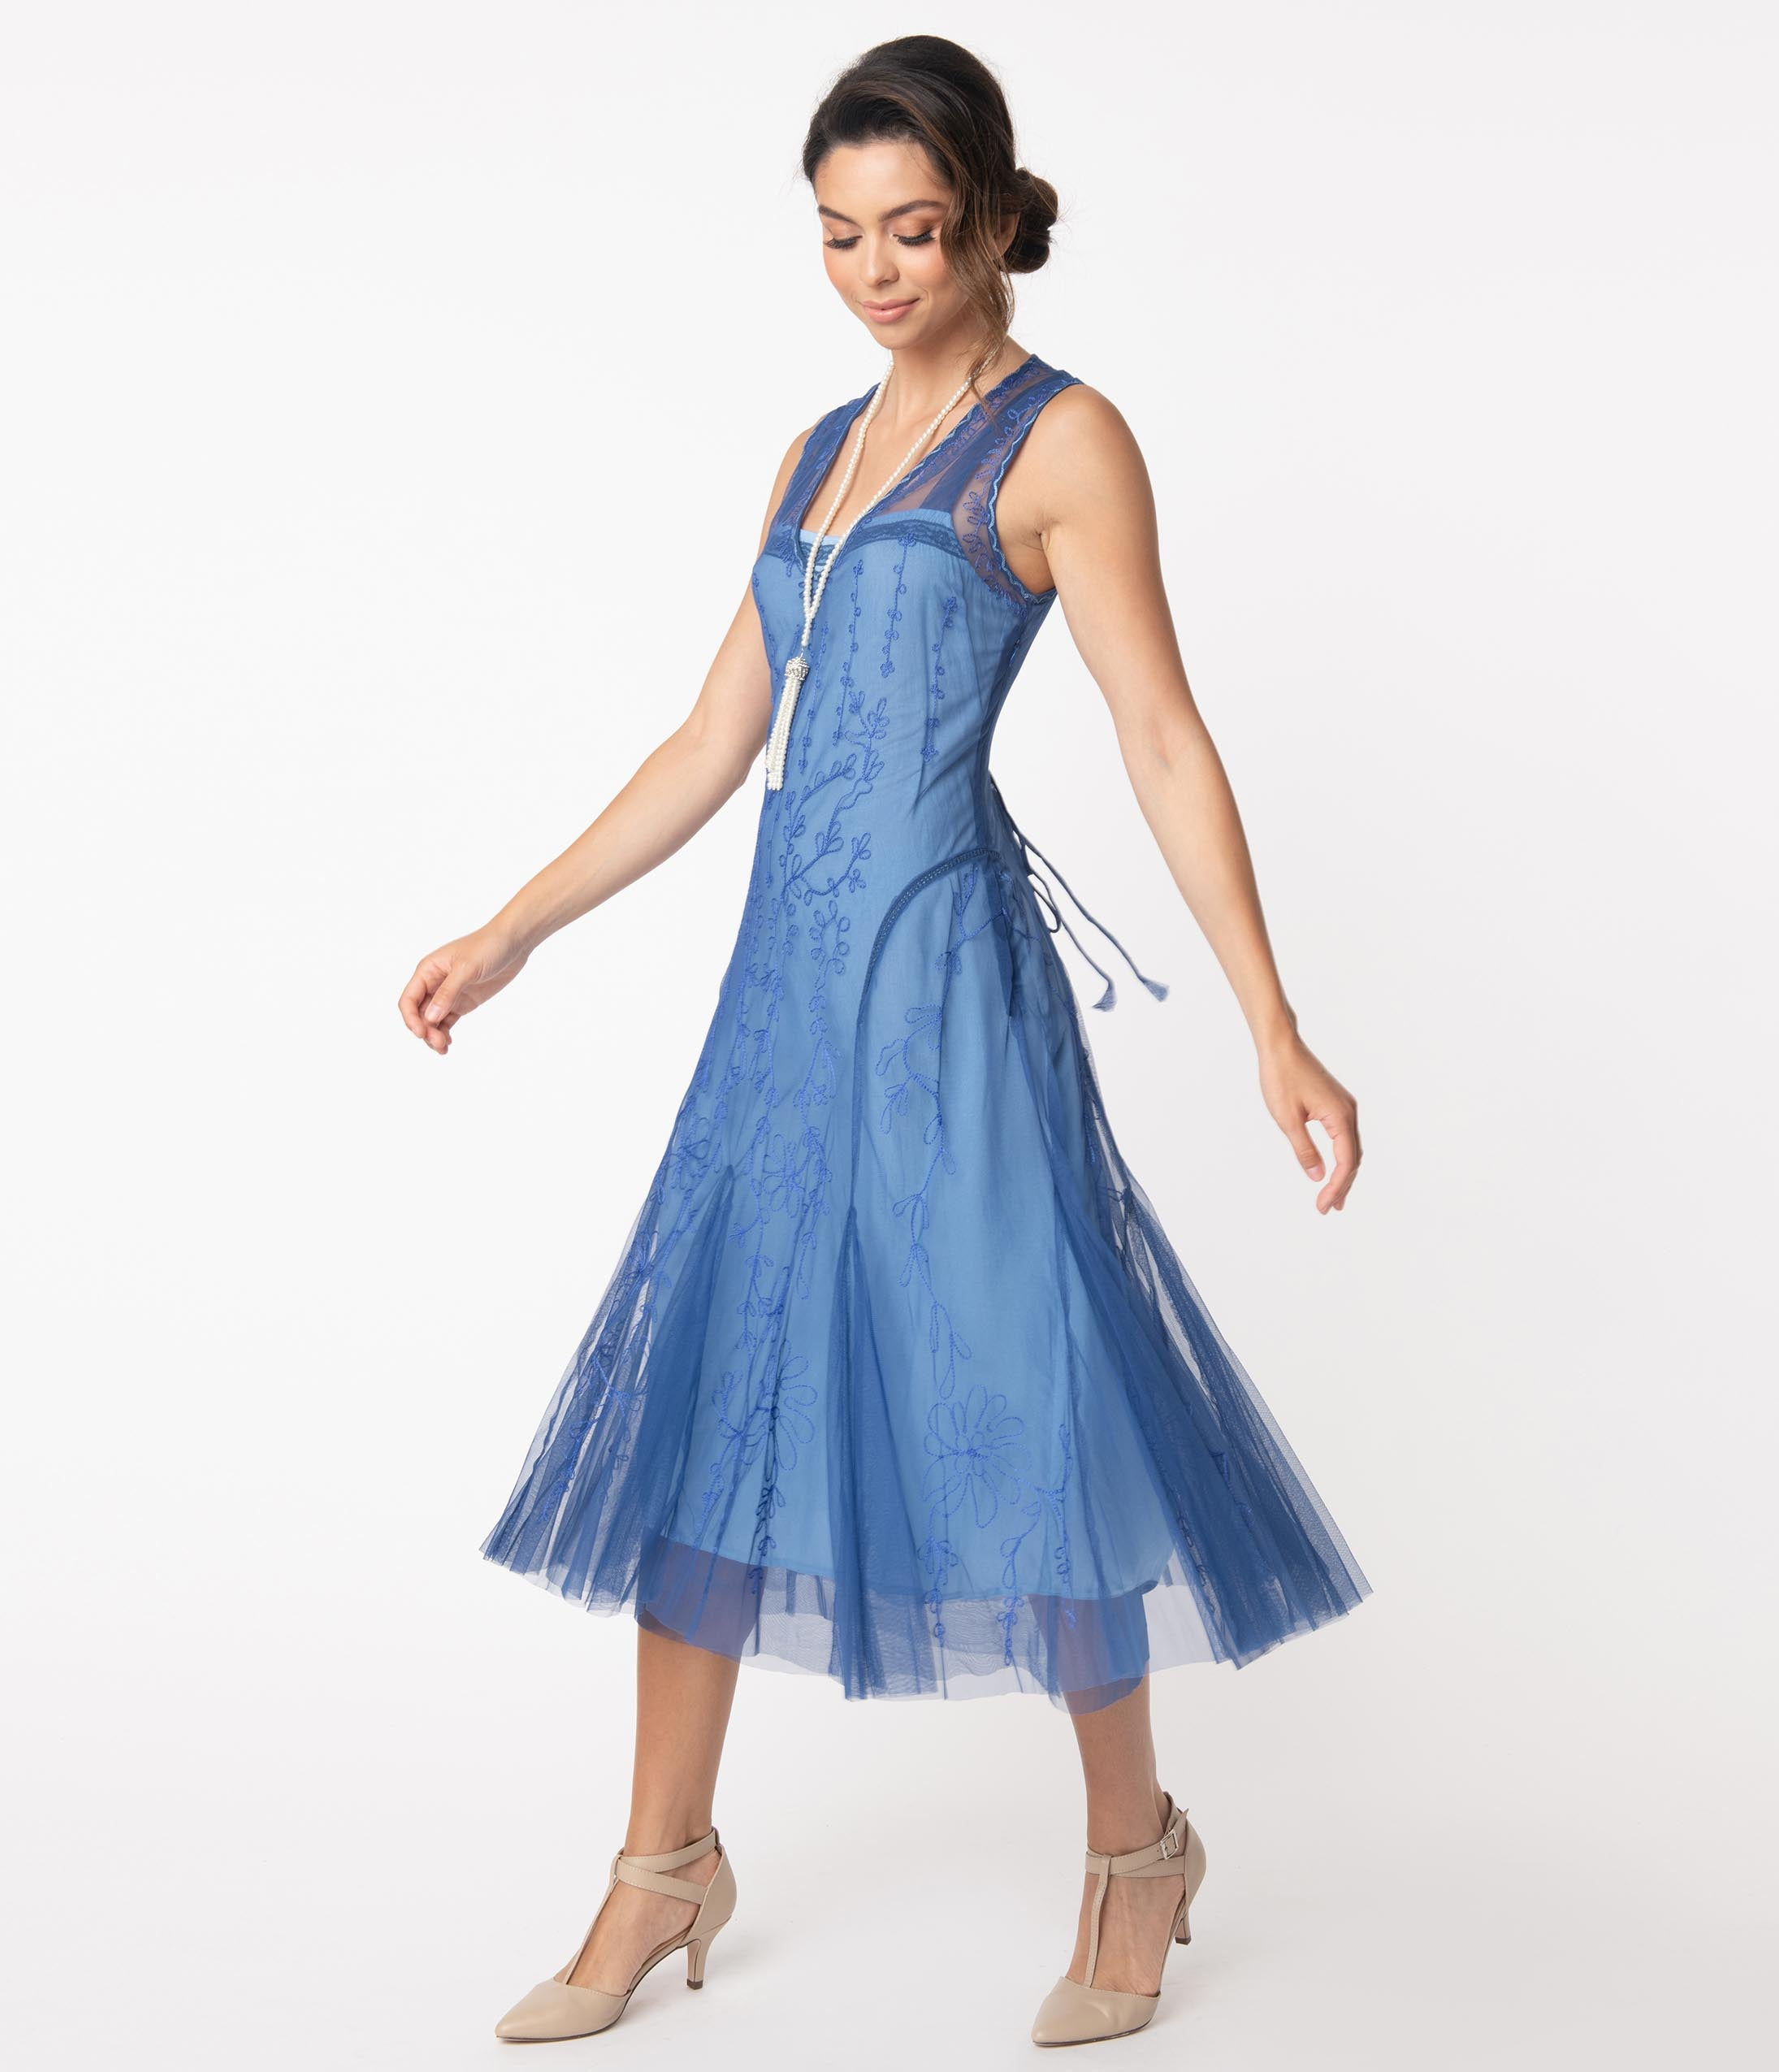 Roaring 20s Costumes- Flapper Costumes, Gangster Costumes Vintage Style Periwinkle Blue Embroidered Jackie Flapper Dress $218.00 AT vintagedancer.com